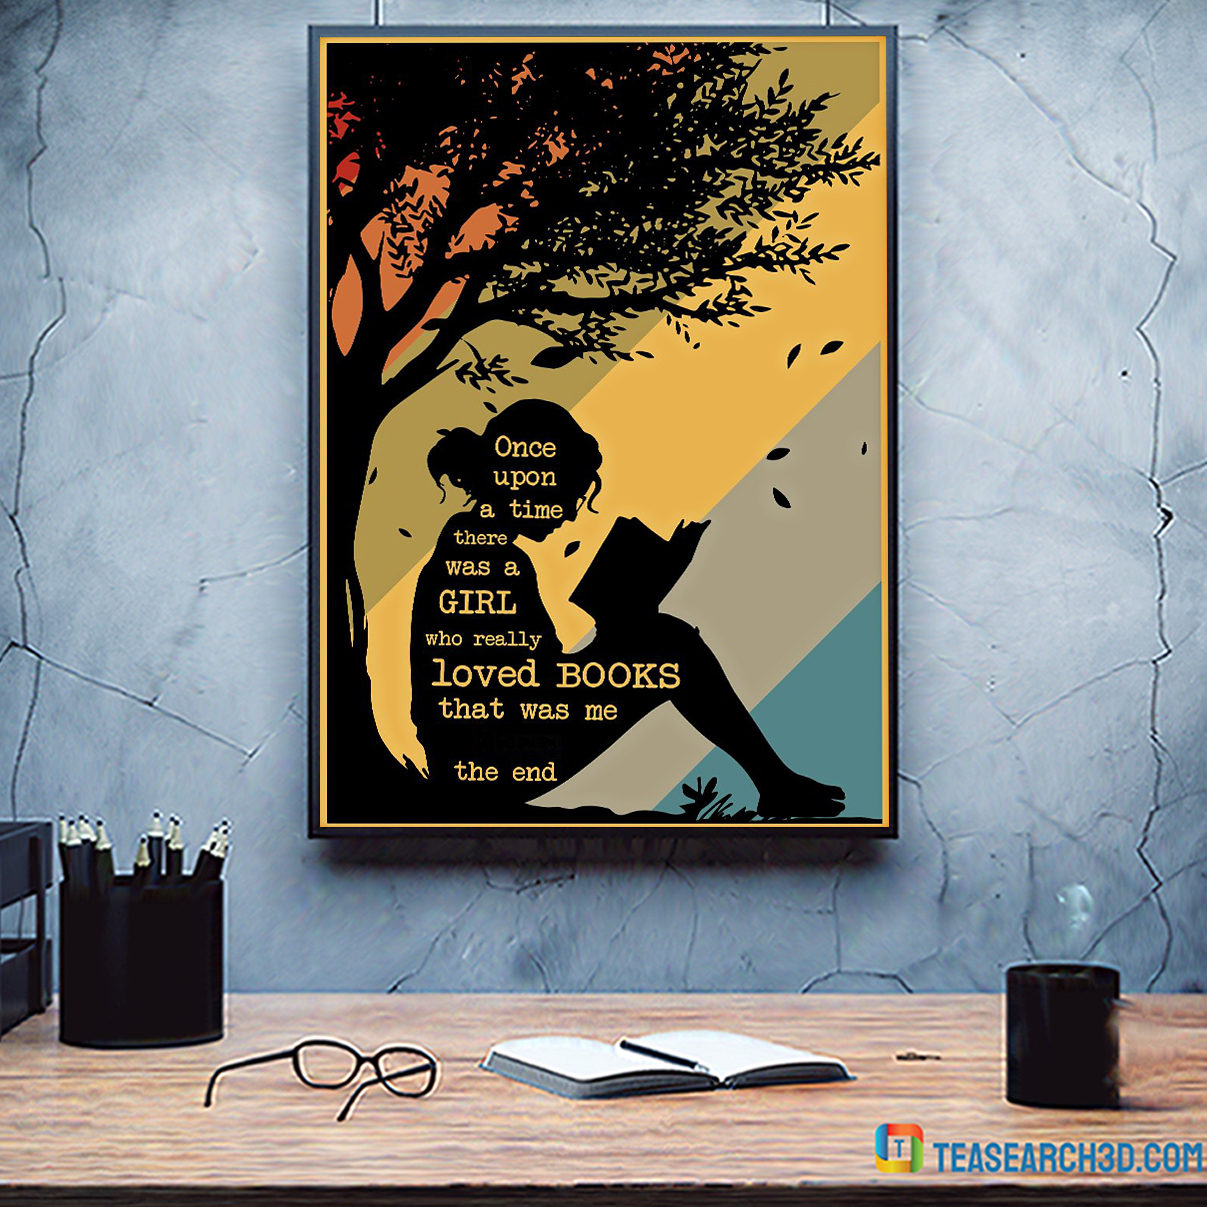 Personalized custom name once upon a time there was a girl who really loved books poster A3